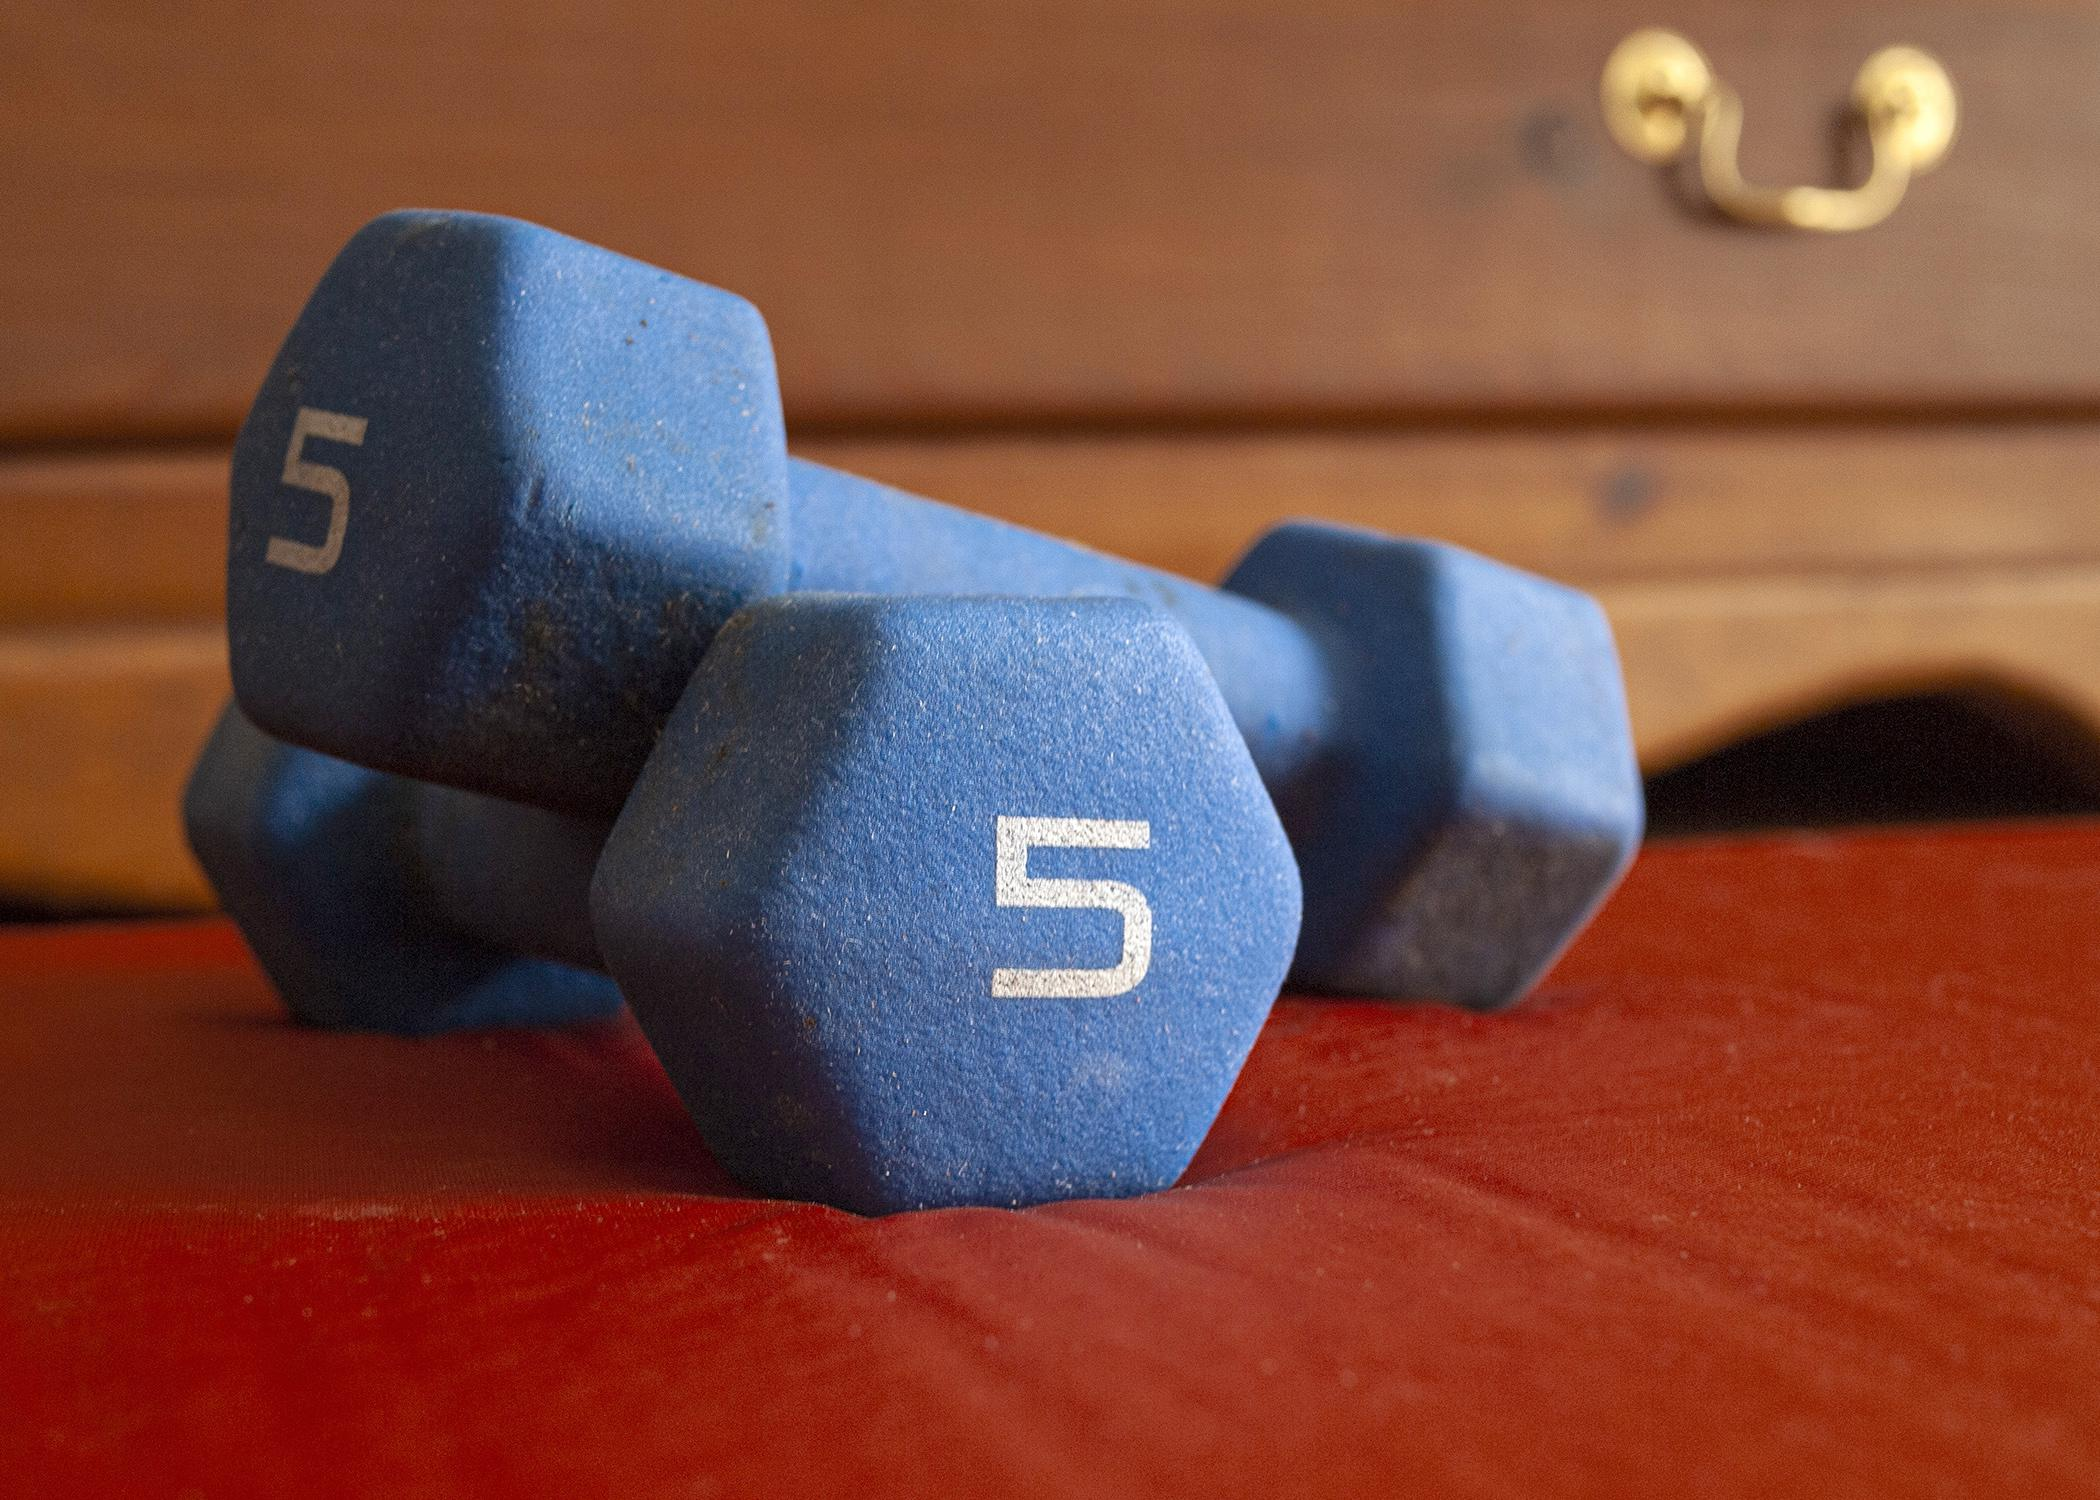 Two blue dumbbells are stacked on a bedroom floor.